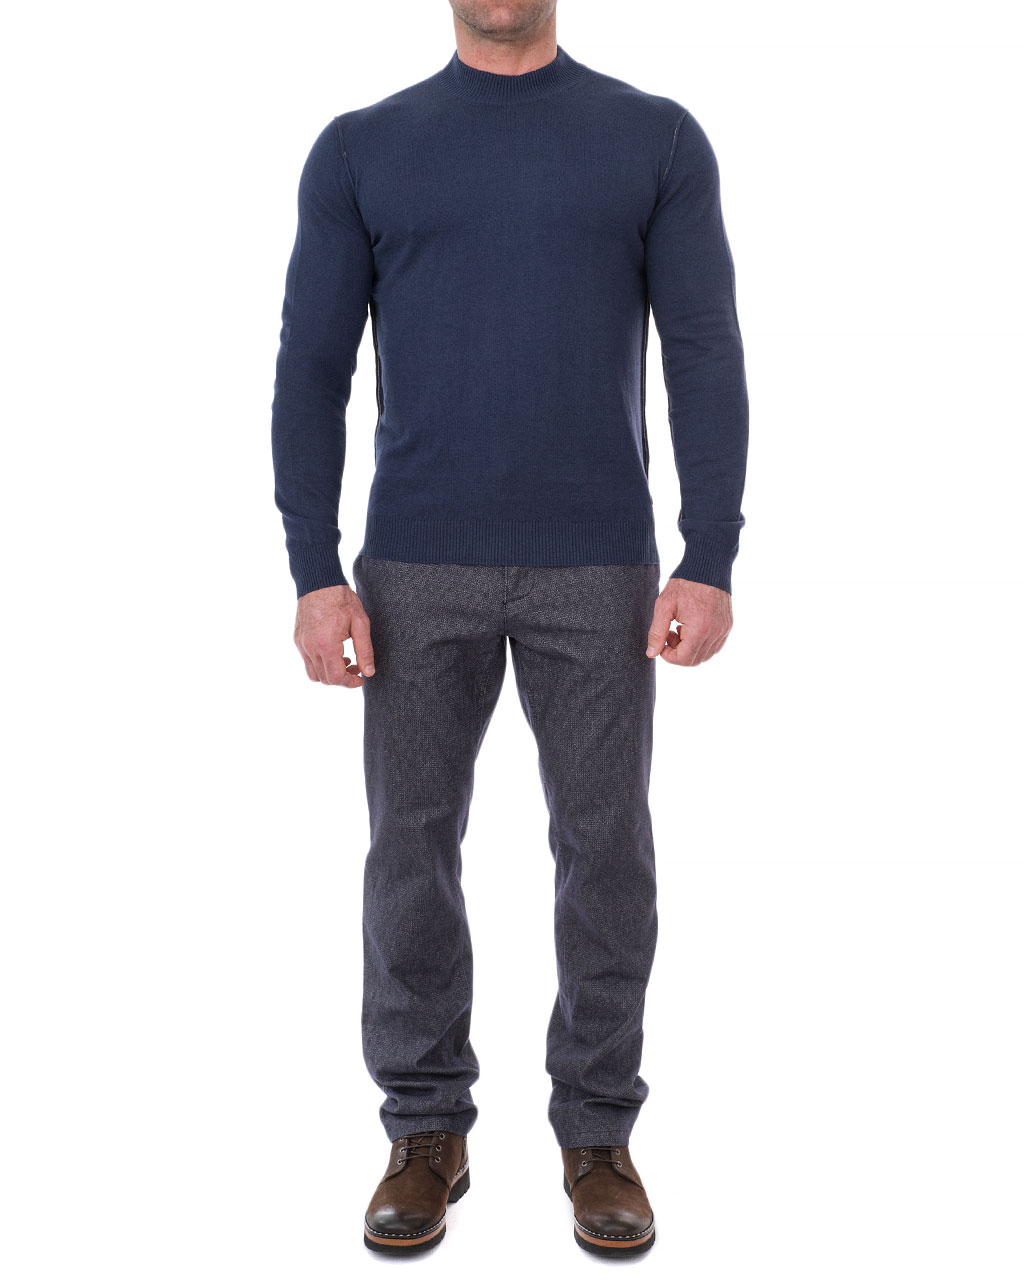 Men's jumper 75217-680-487625/7-81    (2)